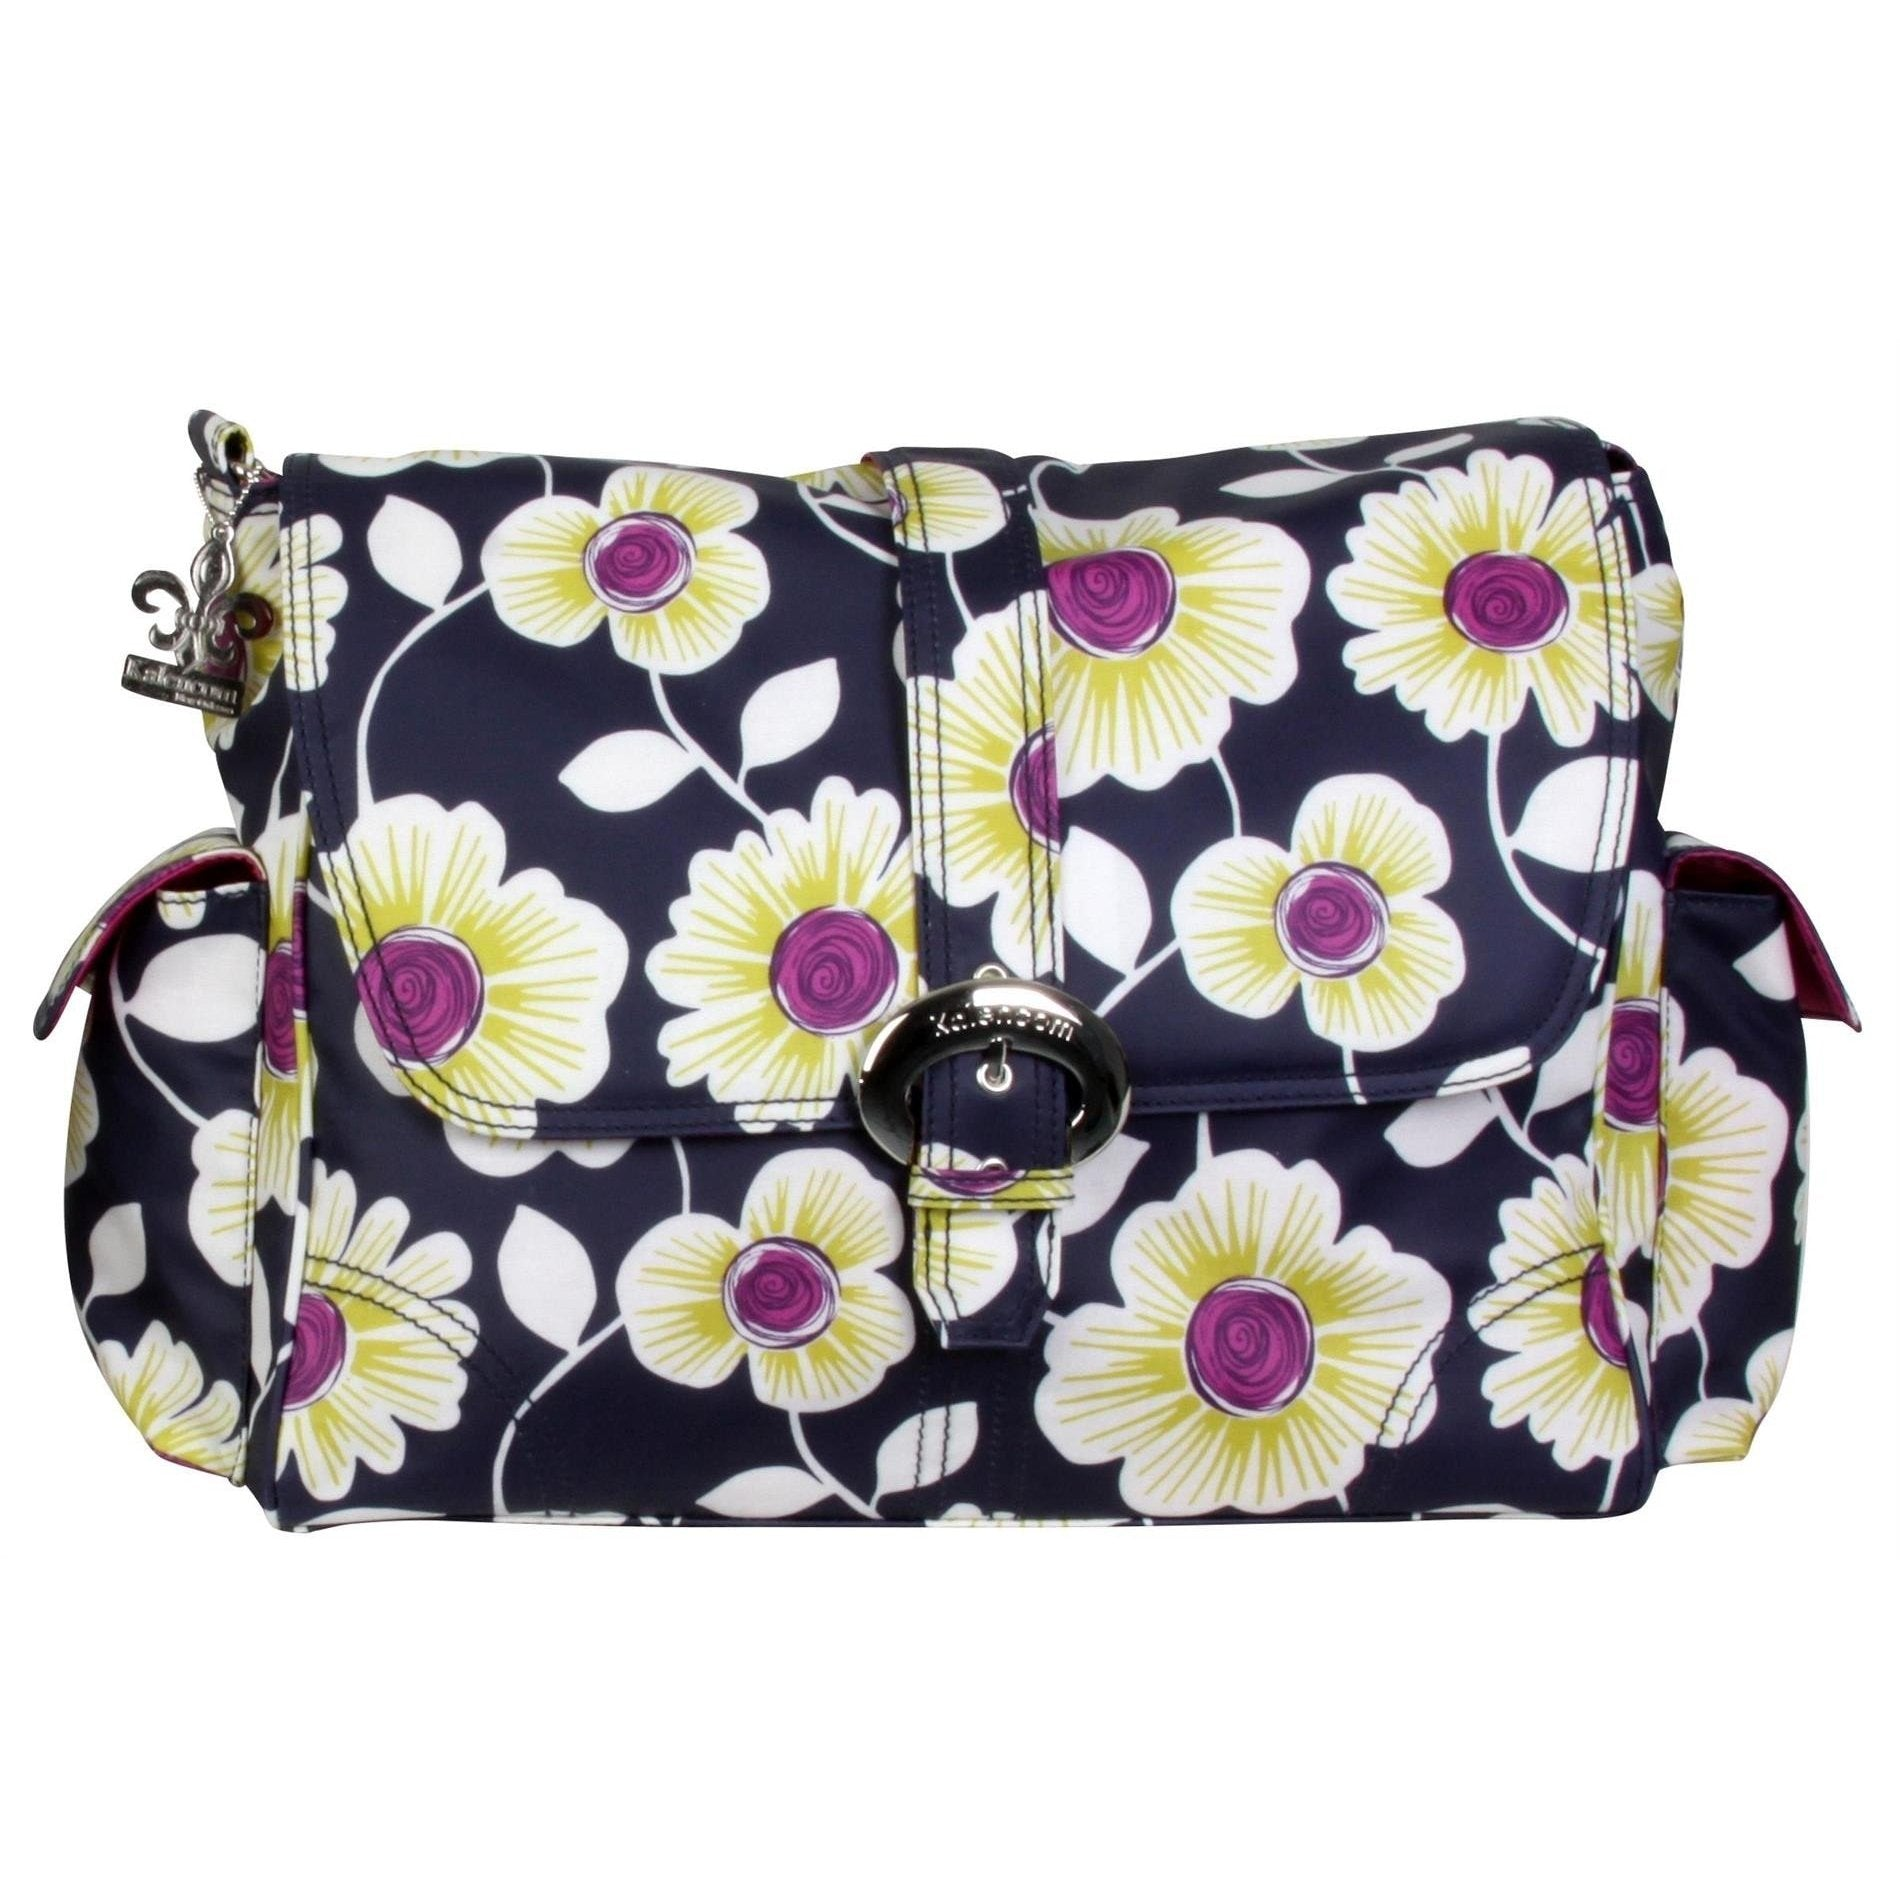 Jewel Daisies Matte Coated Buckle Diaper Bag | Style 2960 - Kalencom-Diaper Bags-Default-Jack and Jill Boutique